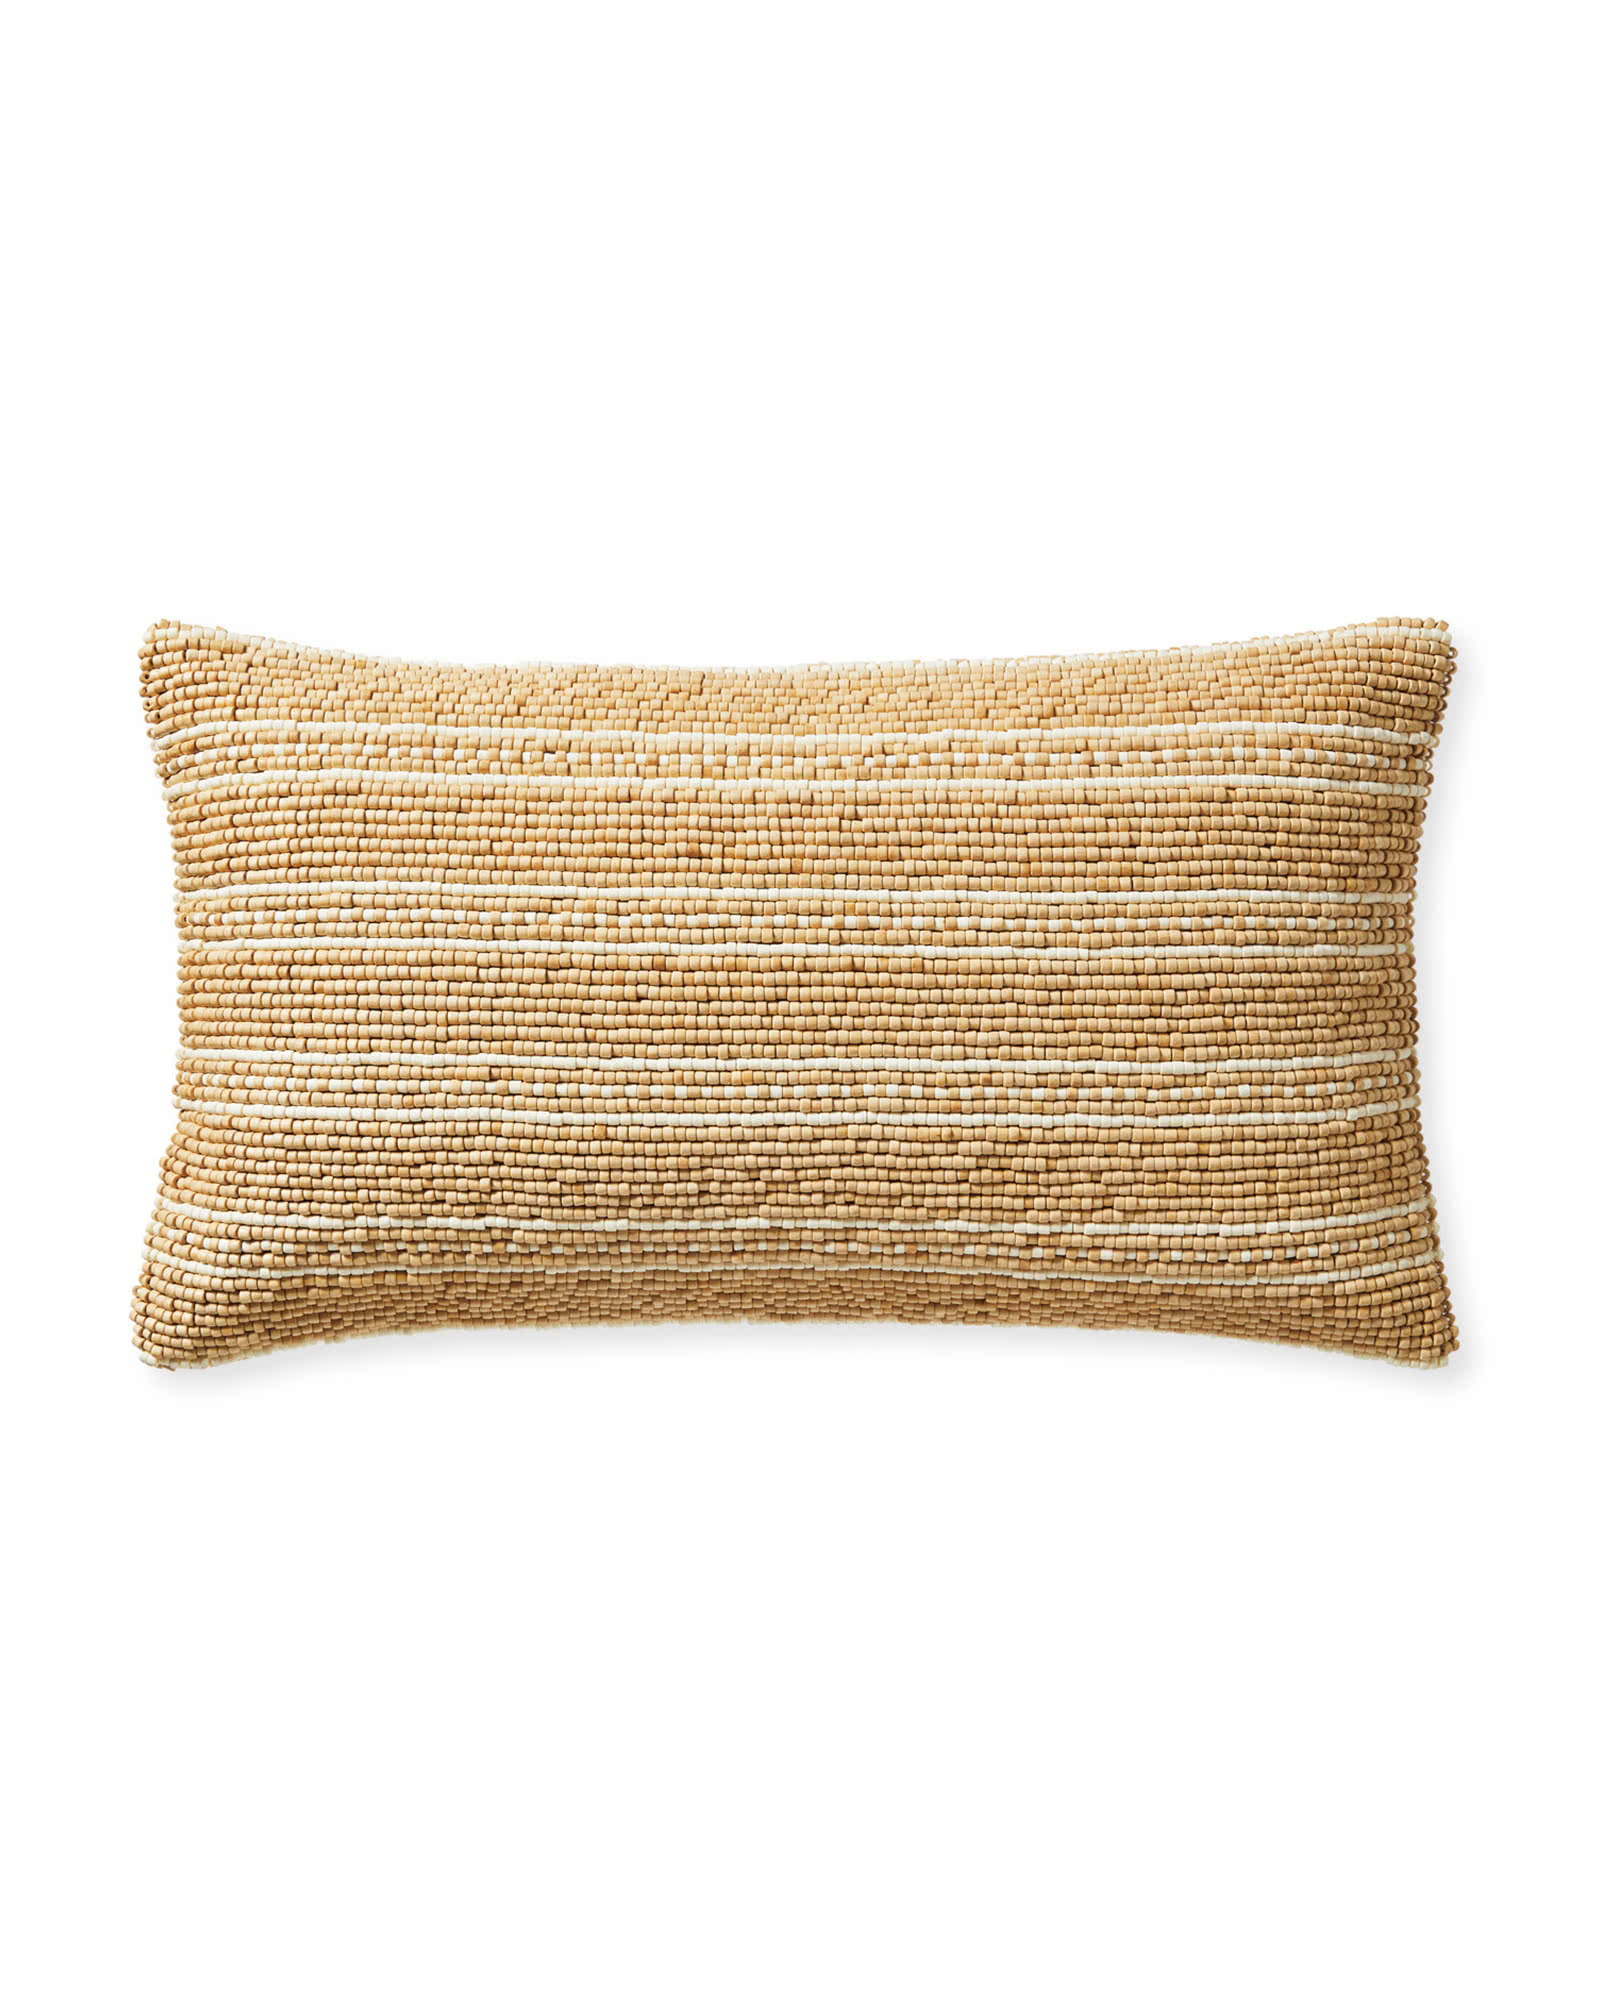 Bali Pillow Cover,